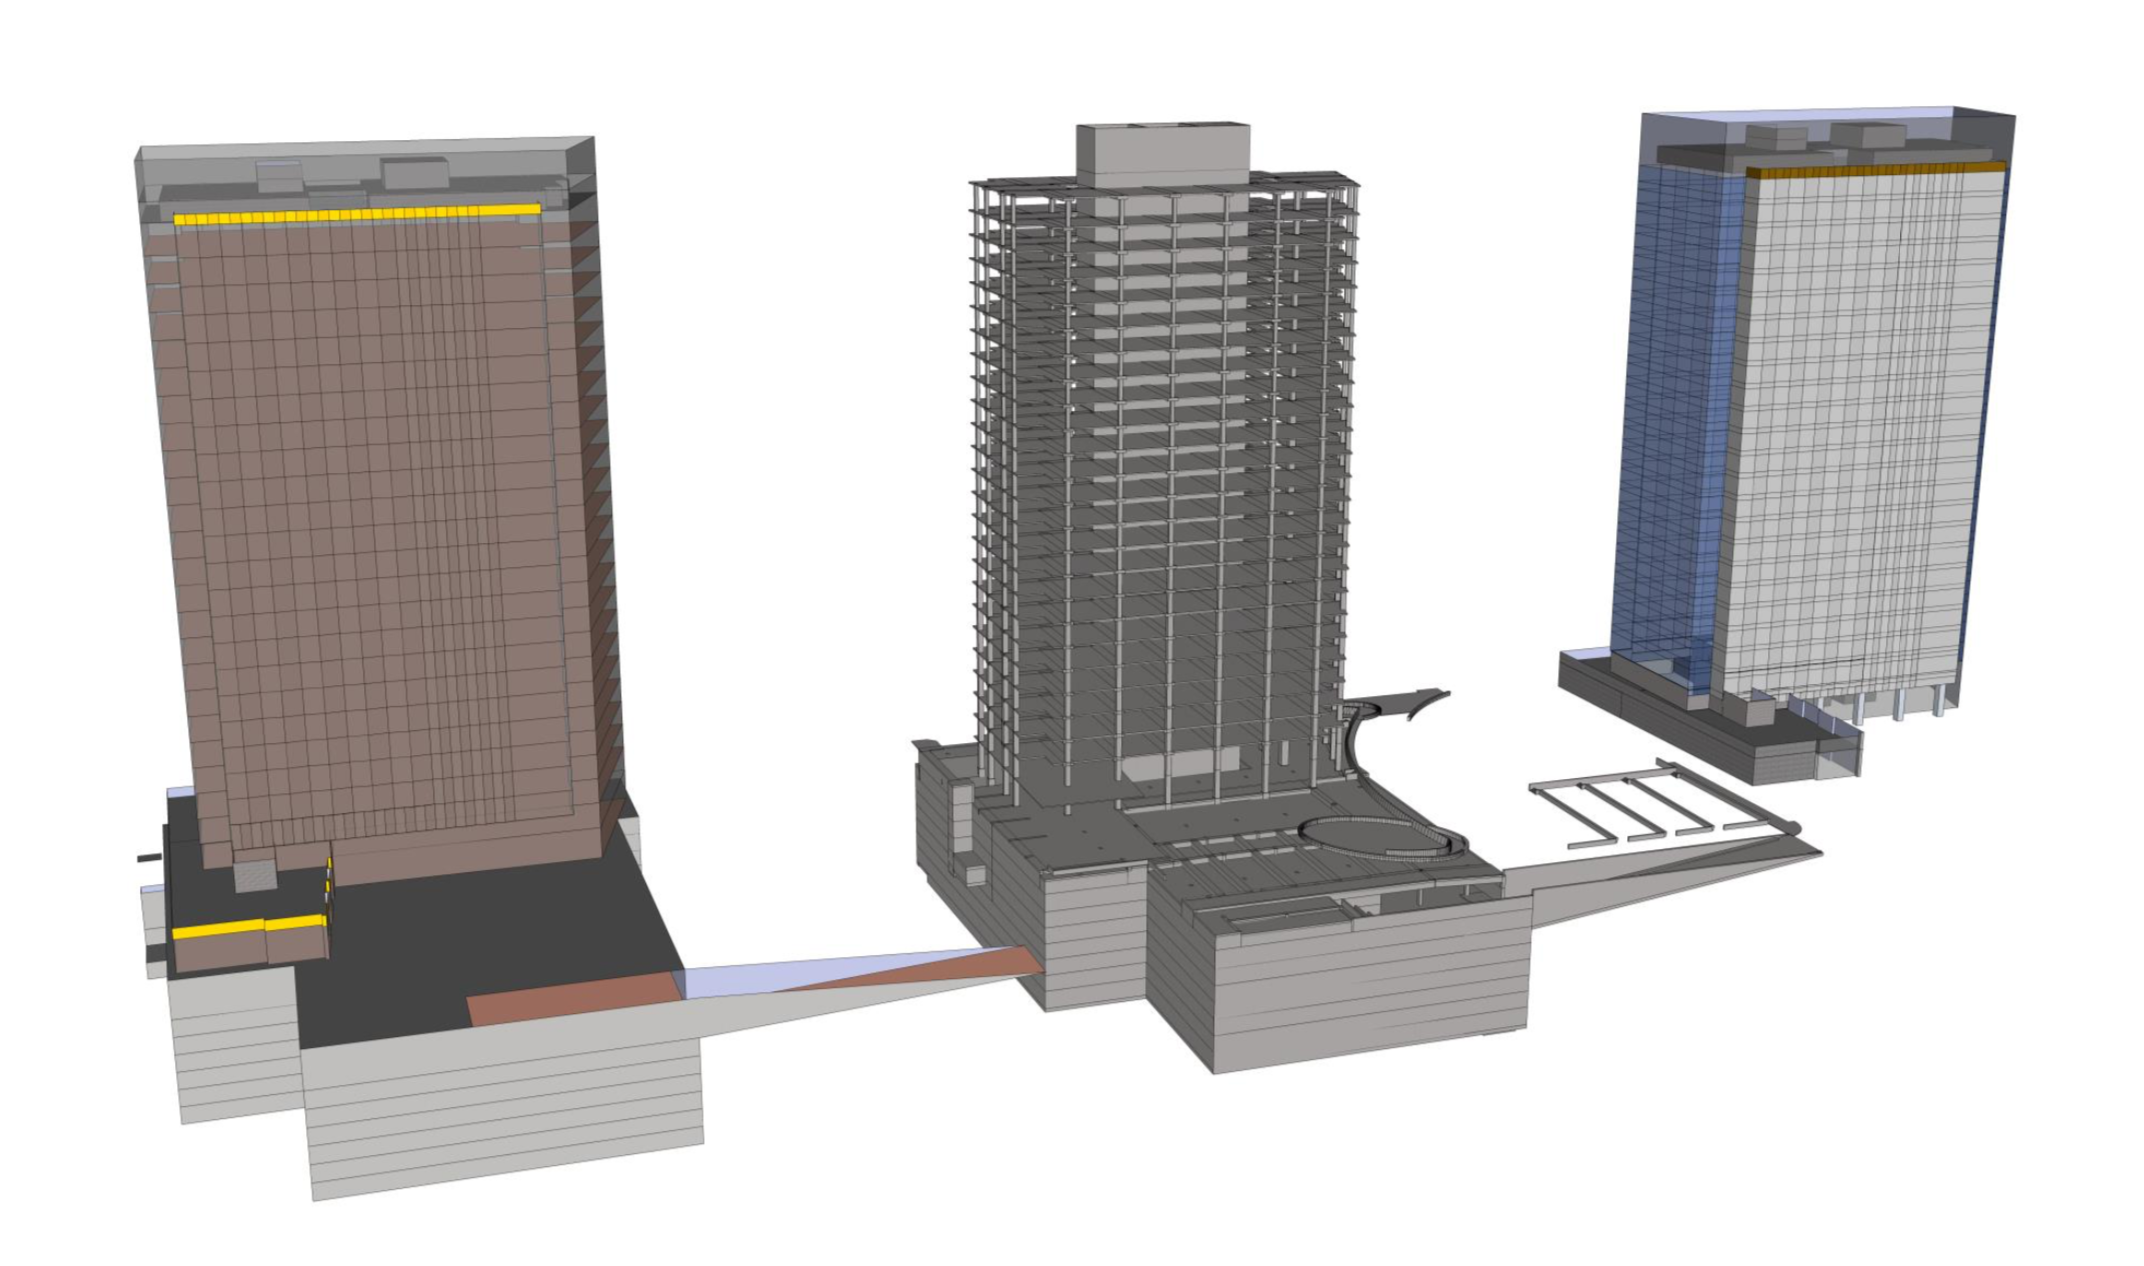 Building models for estimation: Quality Control model in SketchUp, concrete model (ArchiCAD), and exterior envelope model (SketchUp)